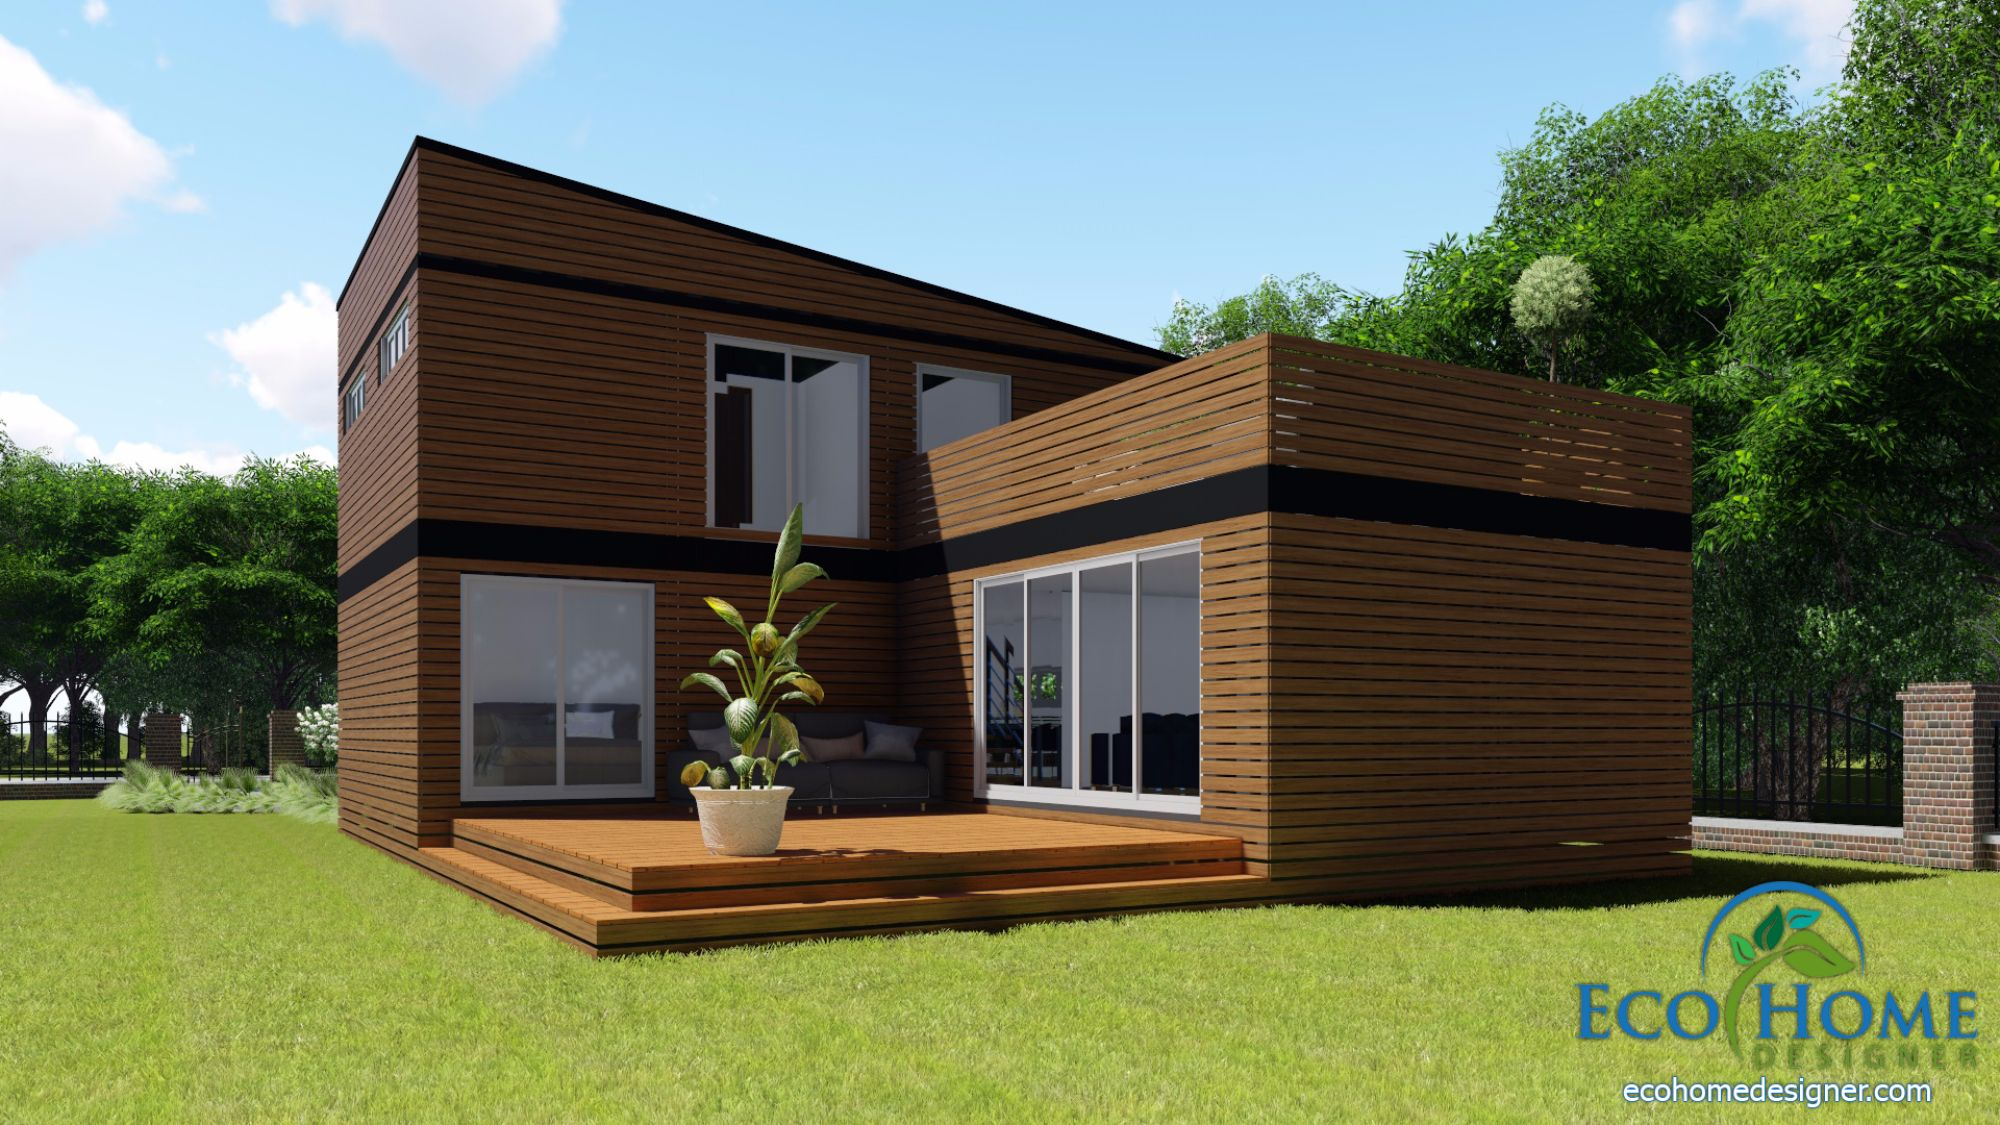 Classy 80 container home plans inspiration design of 25 for Cargo home designs